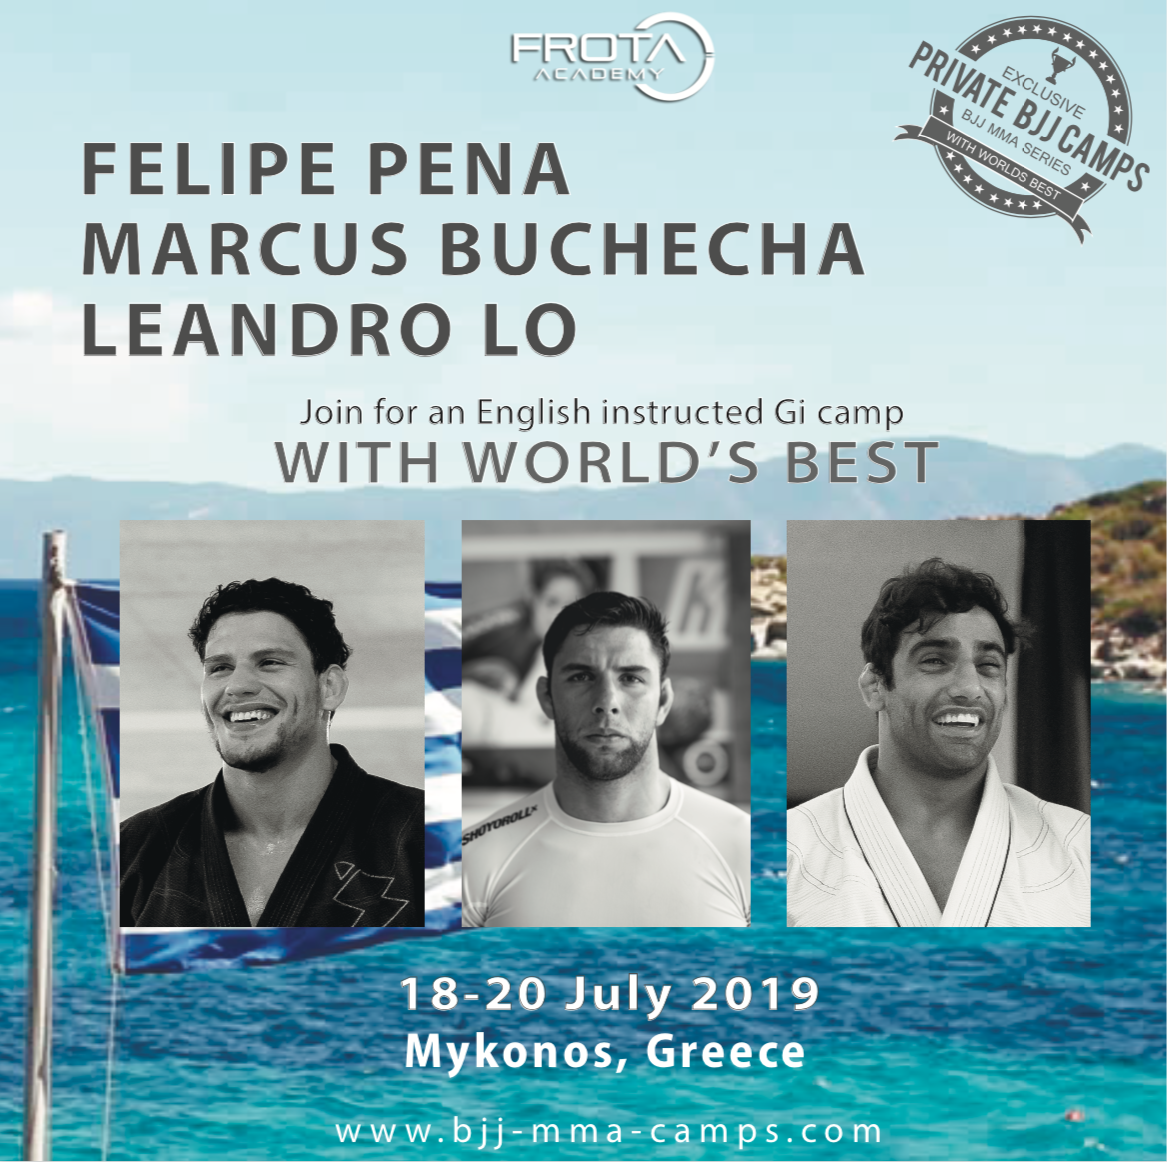 BJJ CAMP With the World's Best on theGreece's